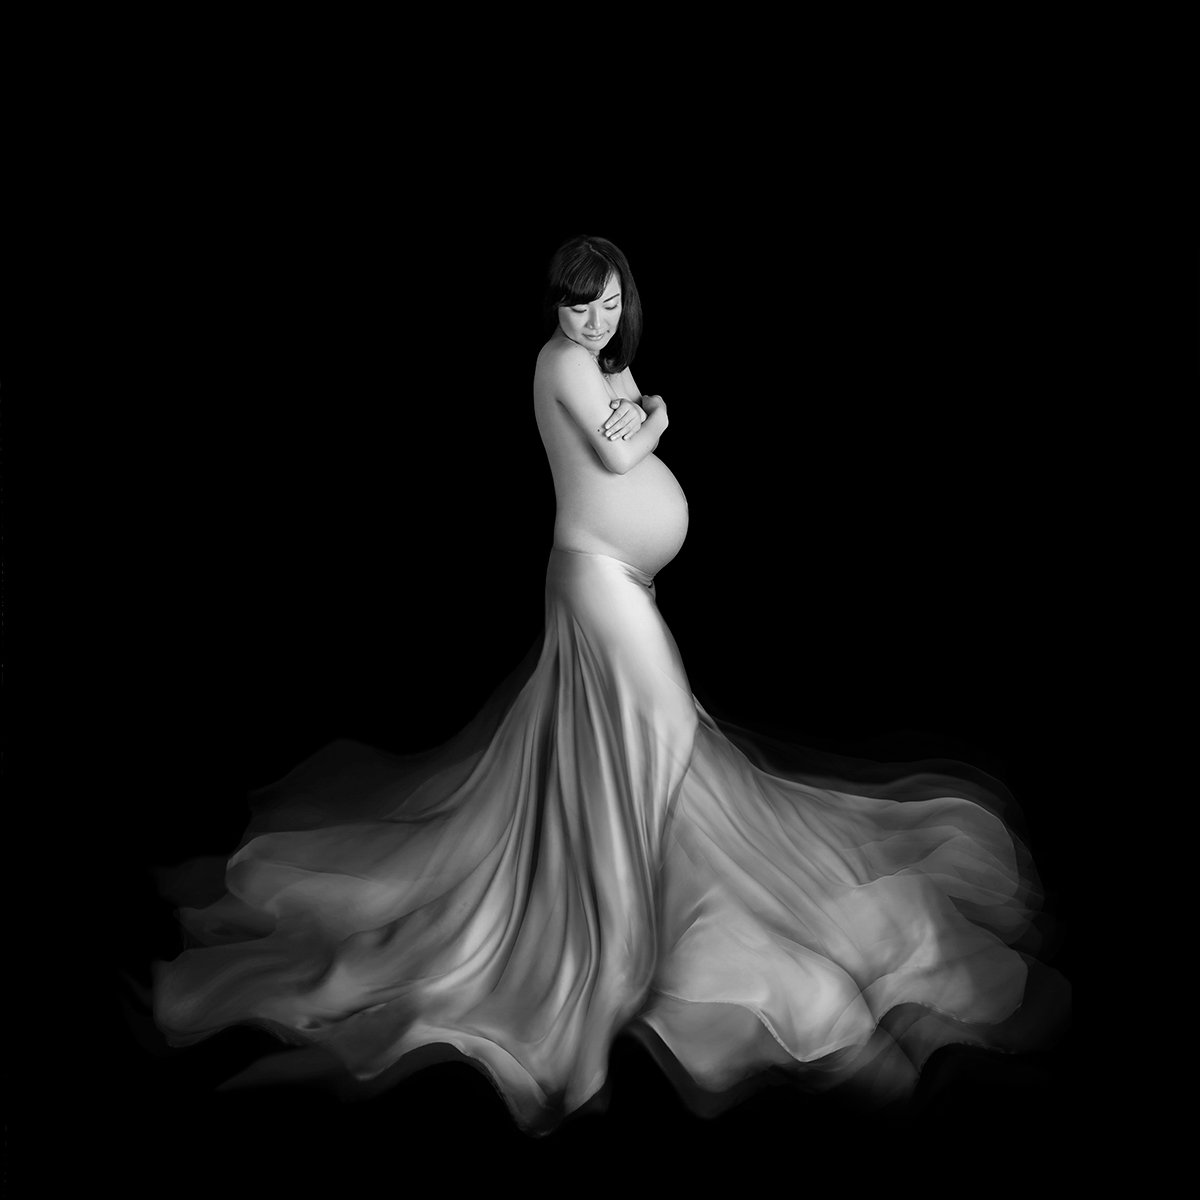 2016 Award winning pregnancy photograph. Black and white inspired studio image of a pregnant lady wrapped in swirling fabric.